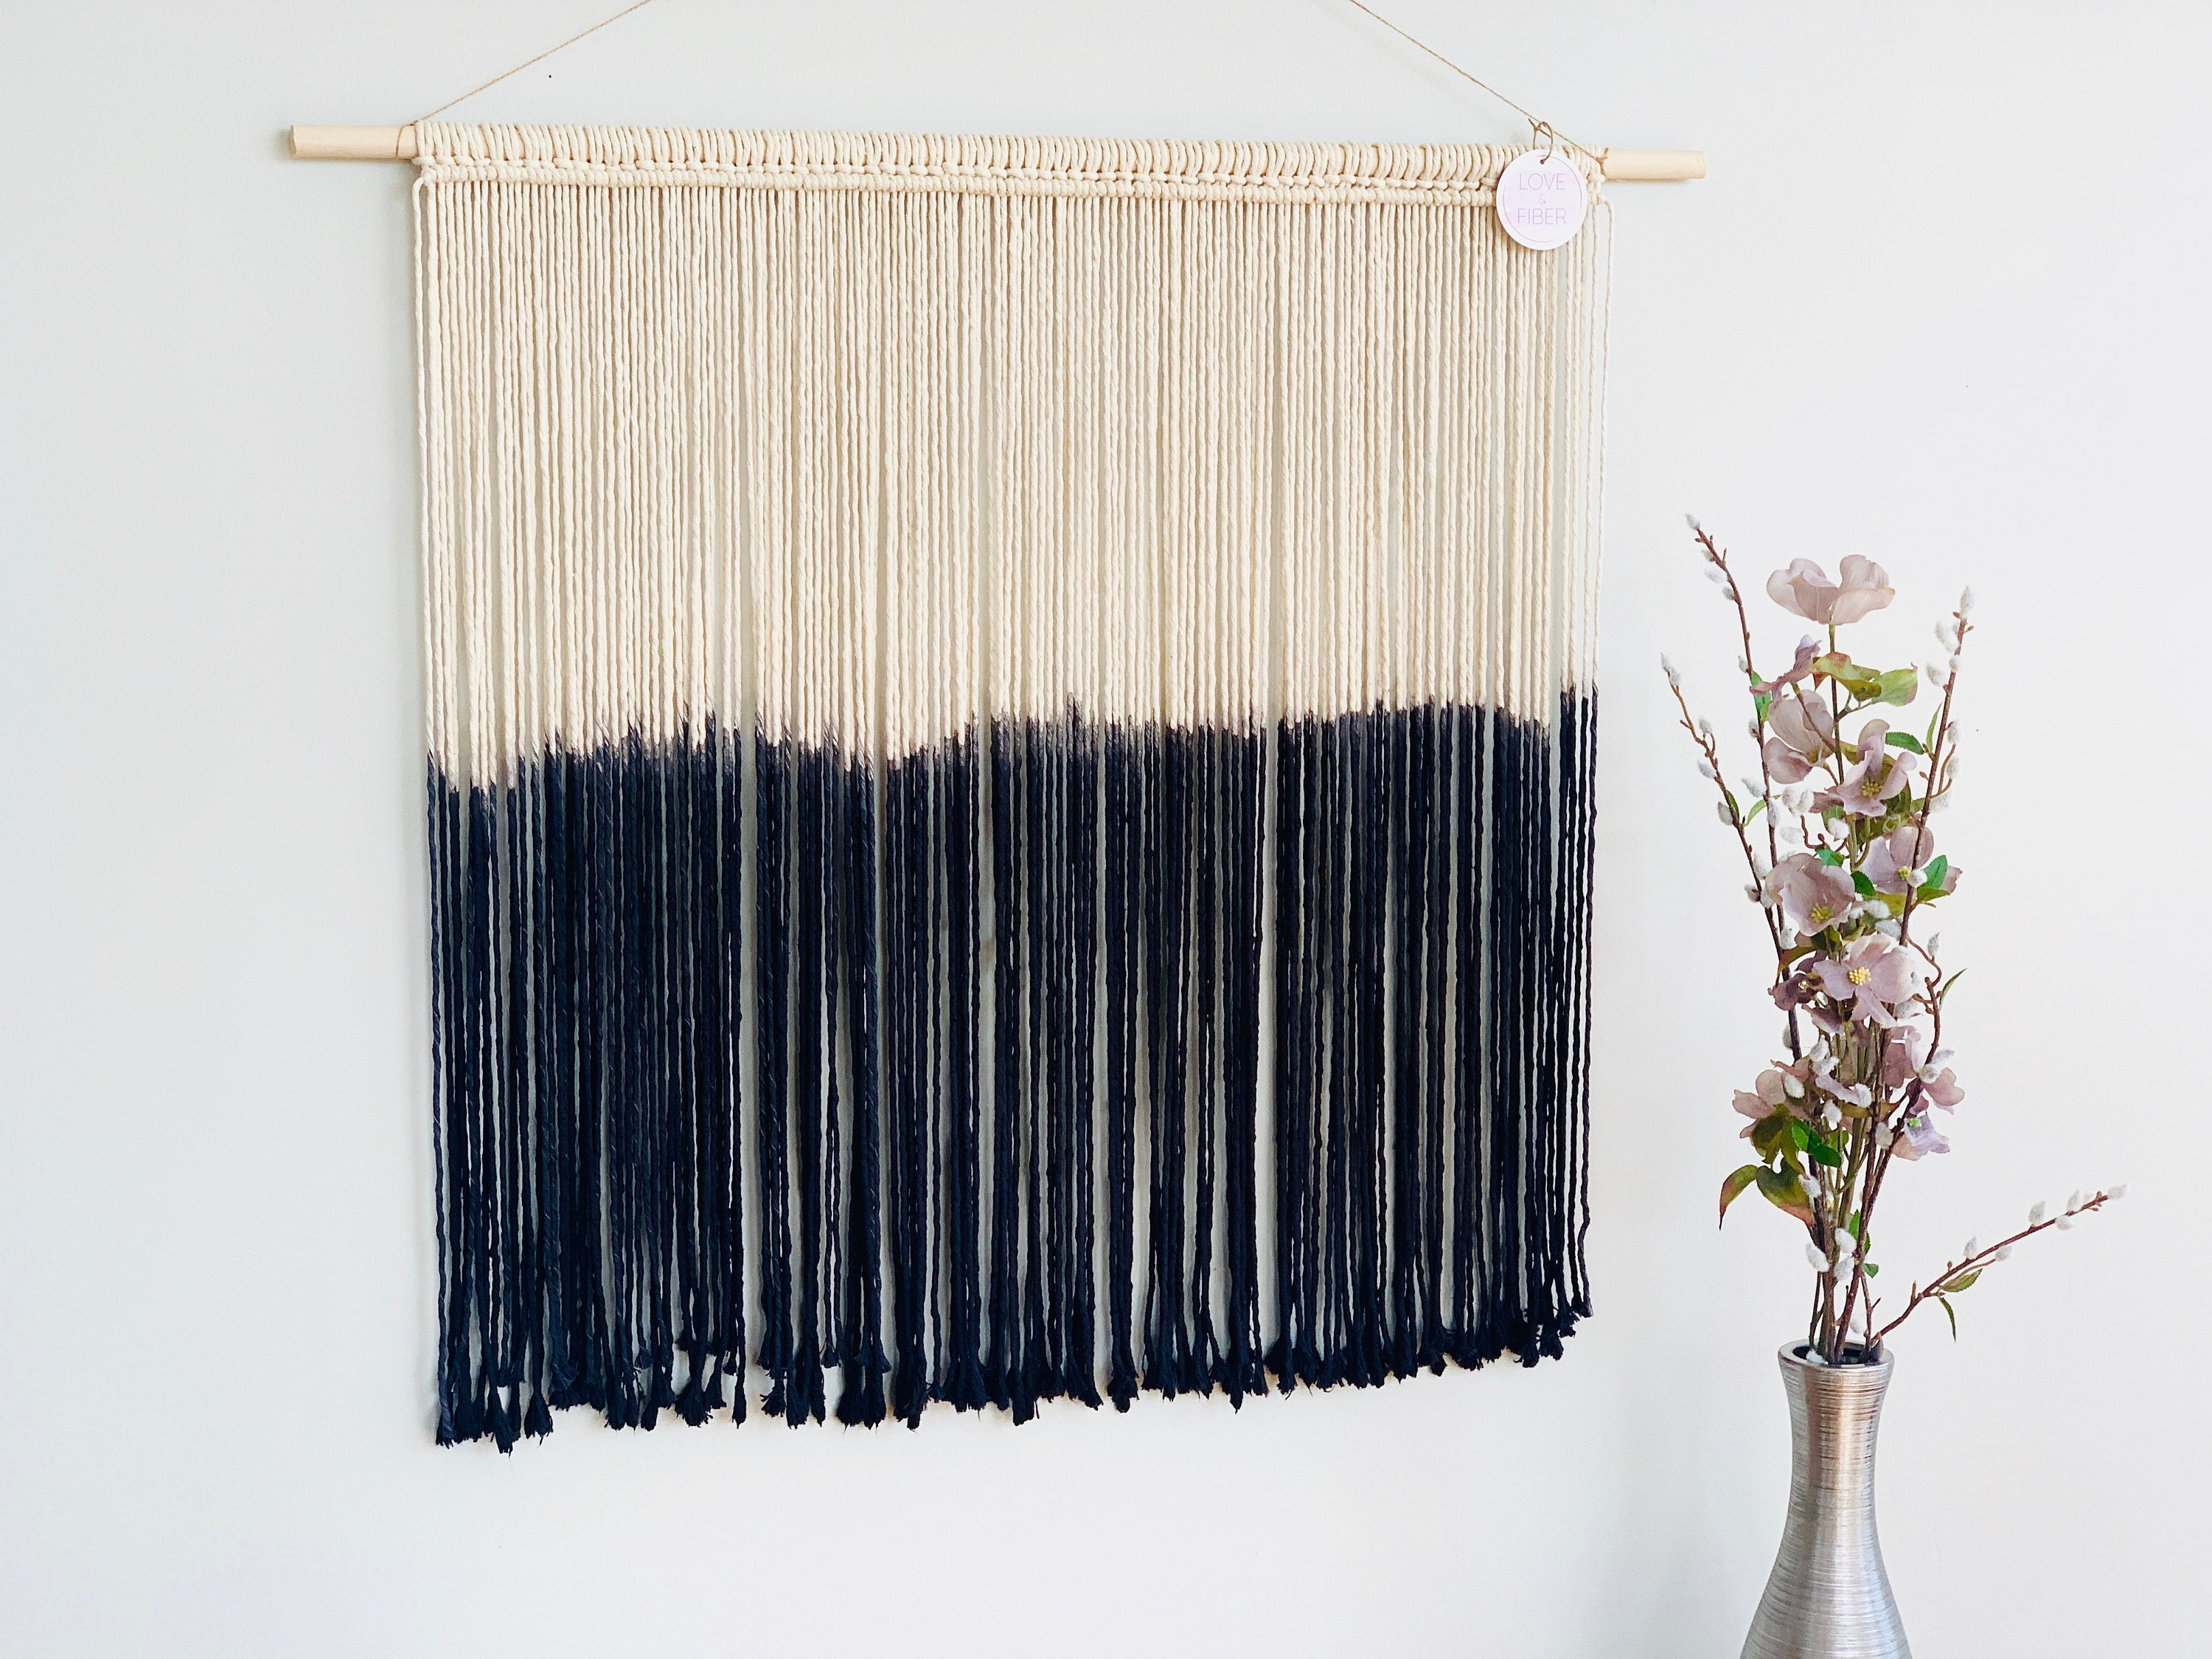 Modern Macrame Wall Hanging, Dyed Woven Wall Art, Living Room Decor